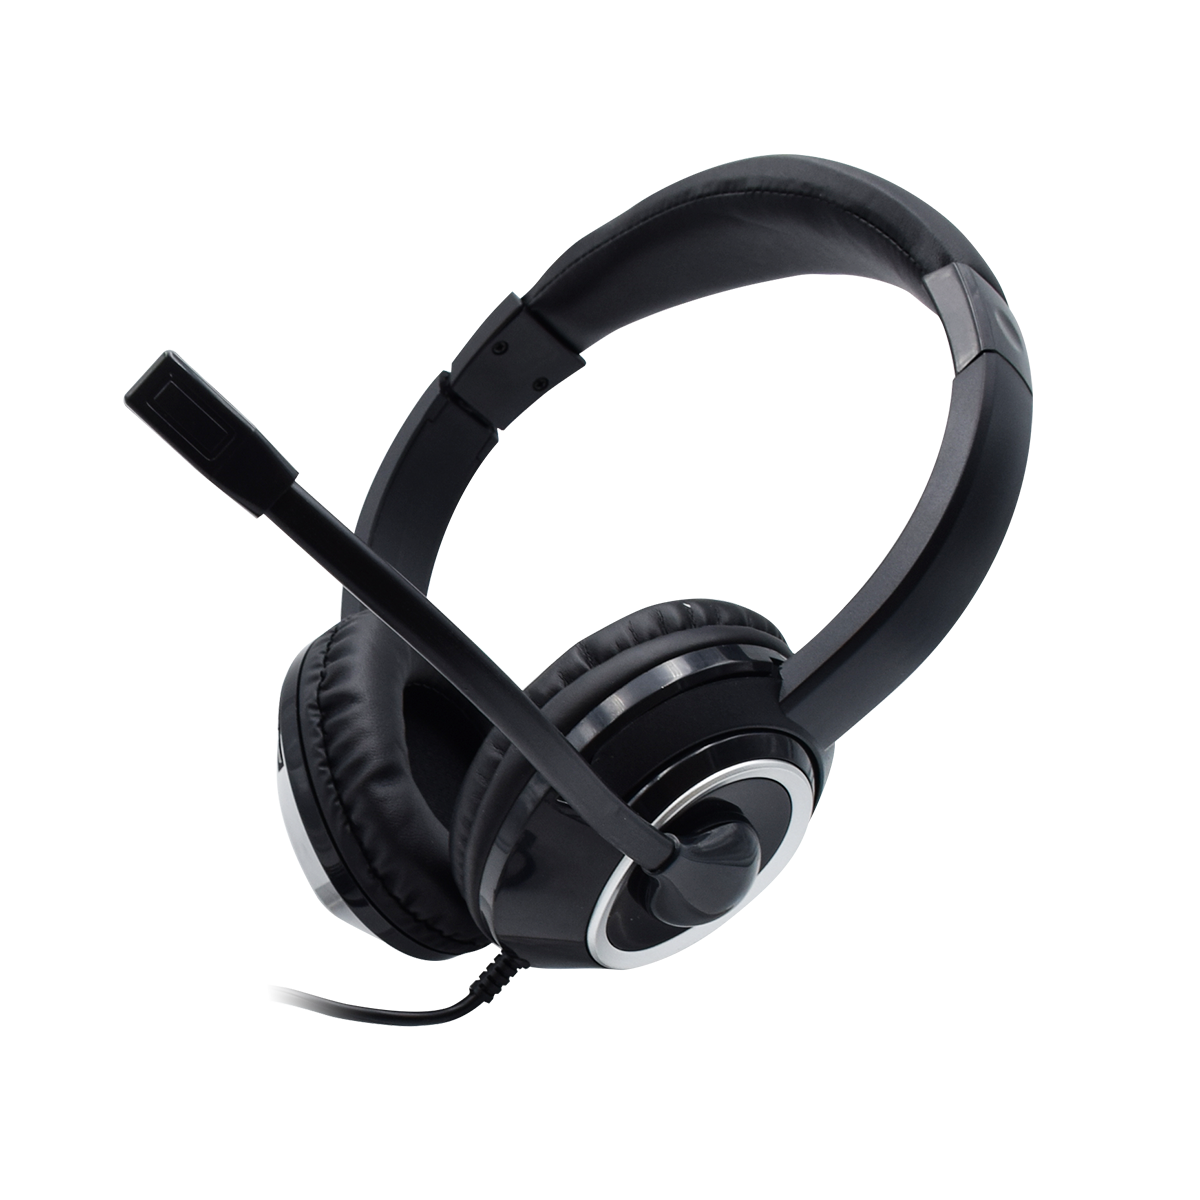 Headphone Gaming Komputer Suara 5.1 7.1, Headphone Gamer PS4 X-BOX dengan Mic Peredam Bising